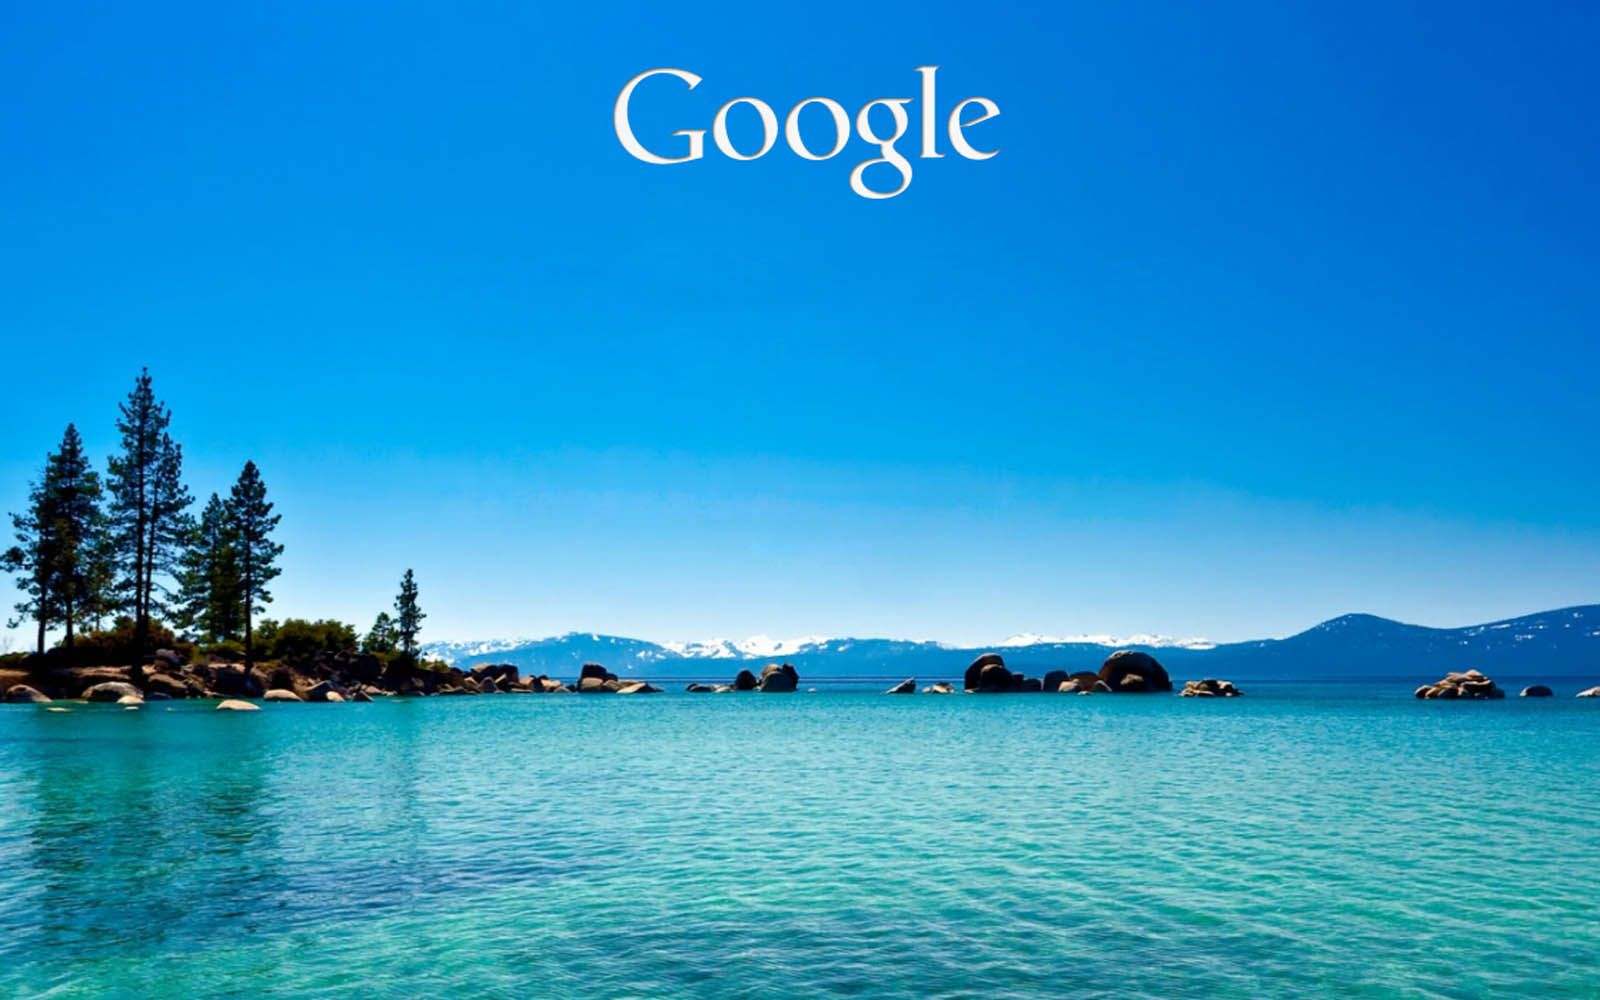 Desktop Wallpaper Google